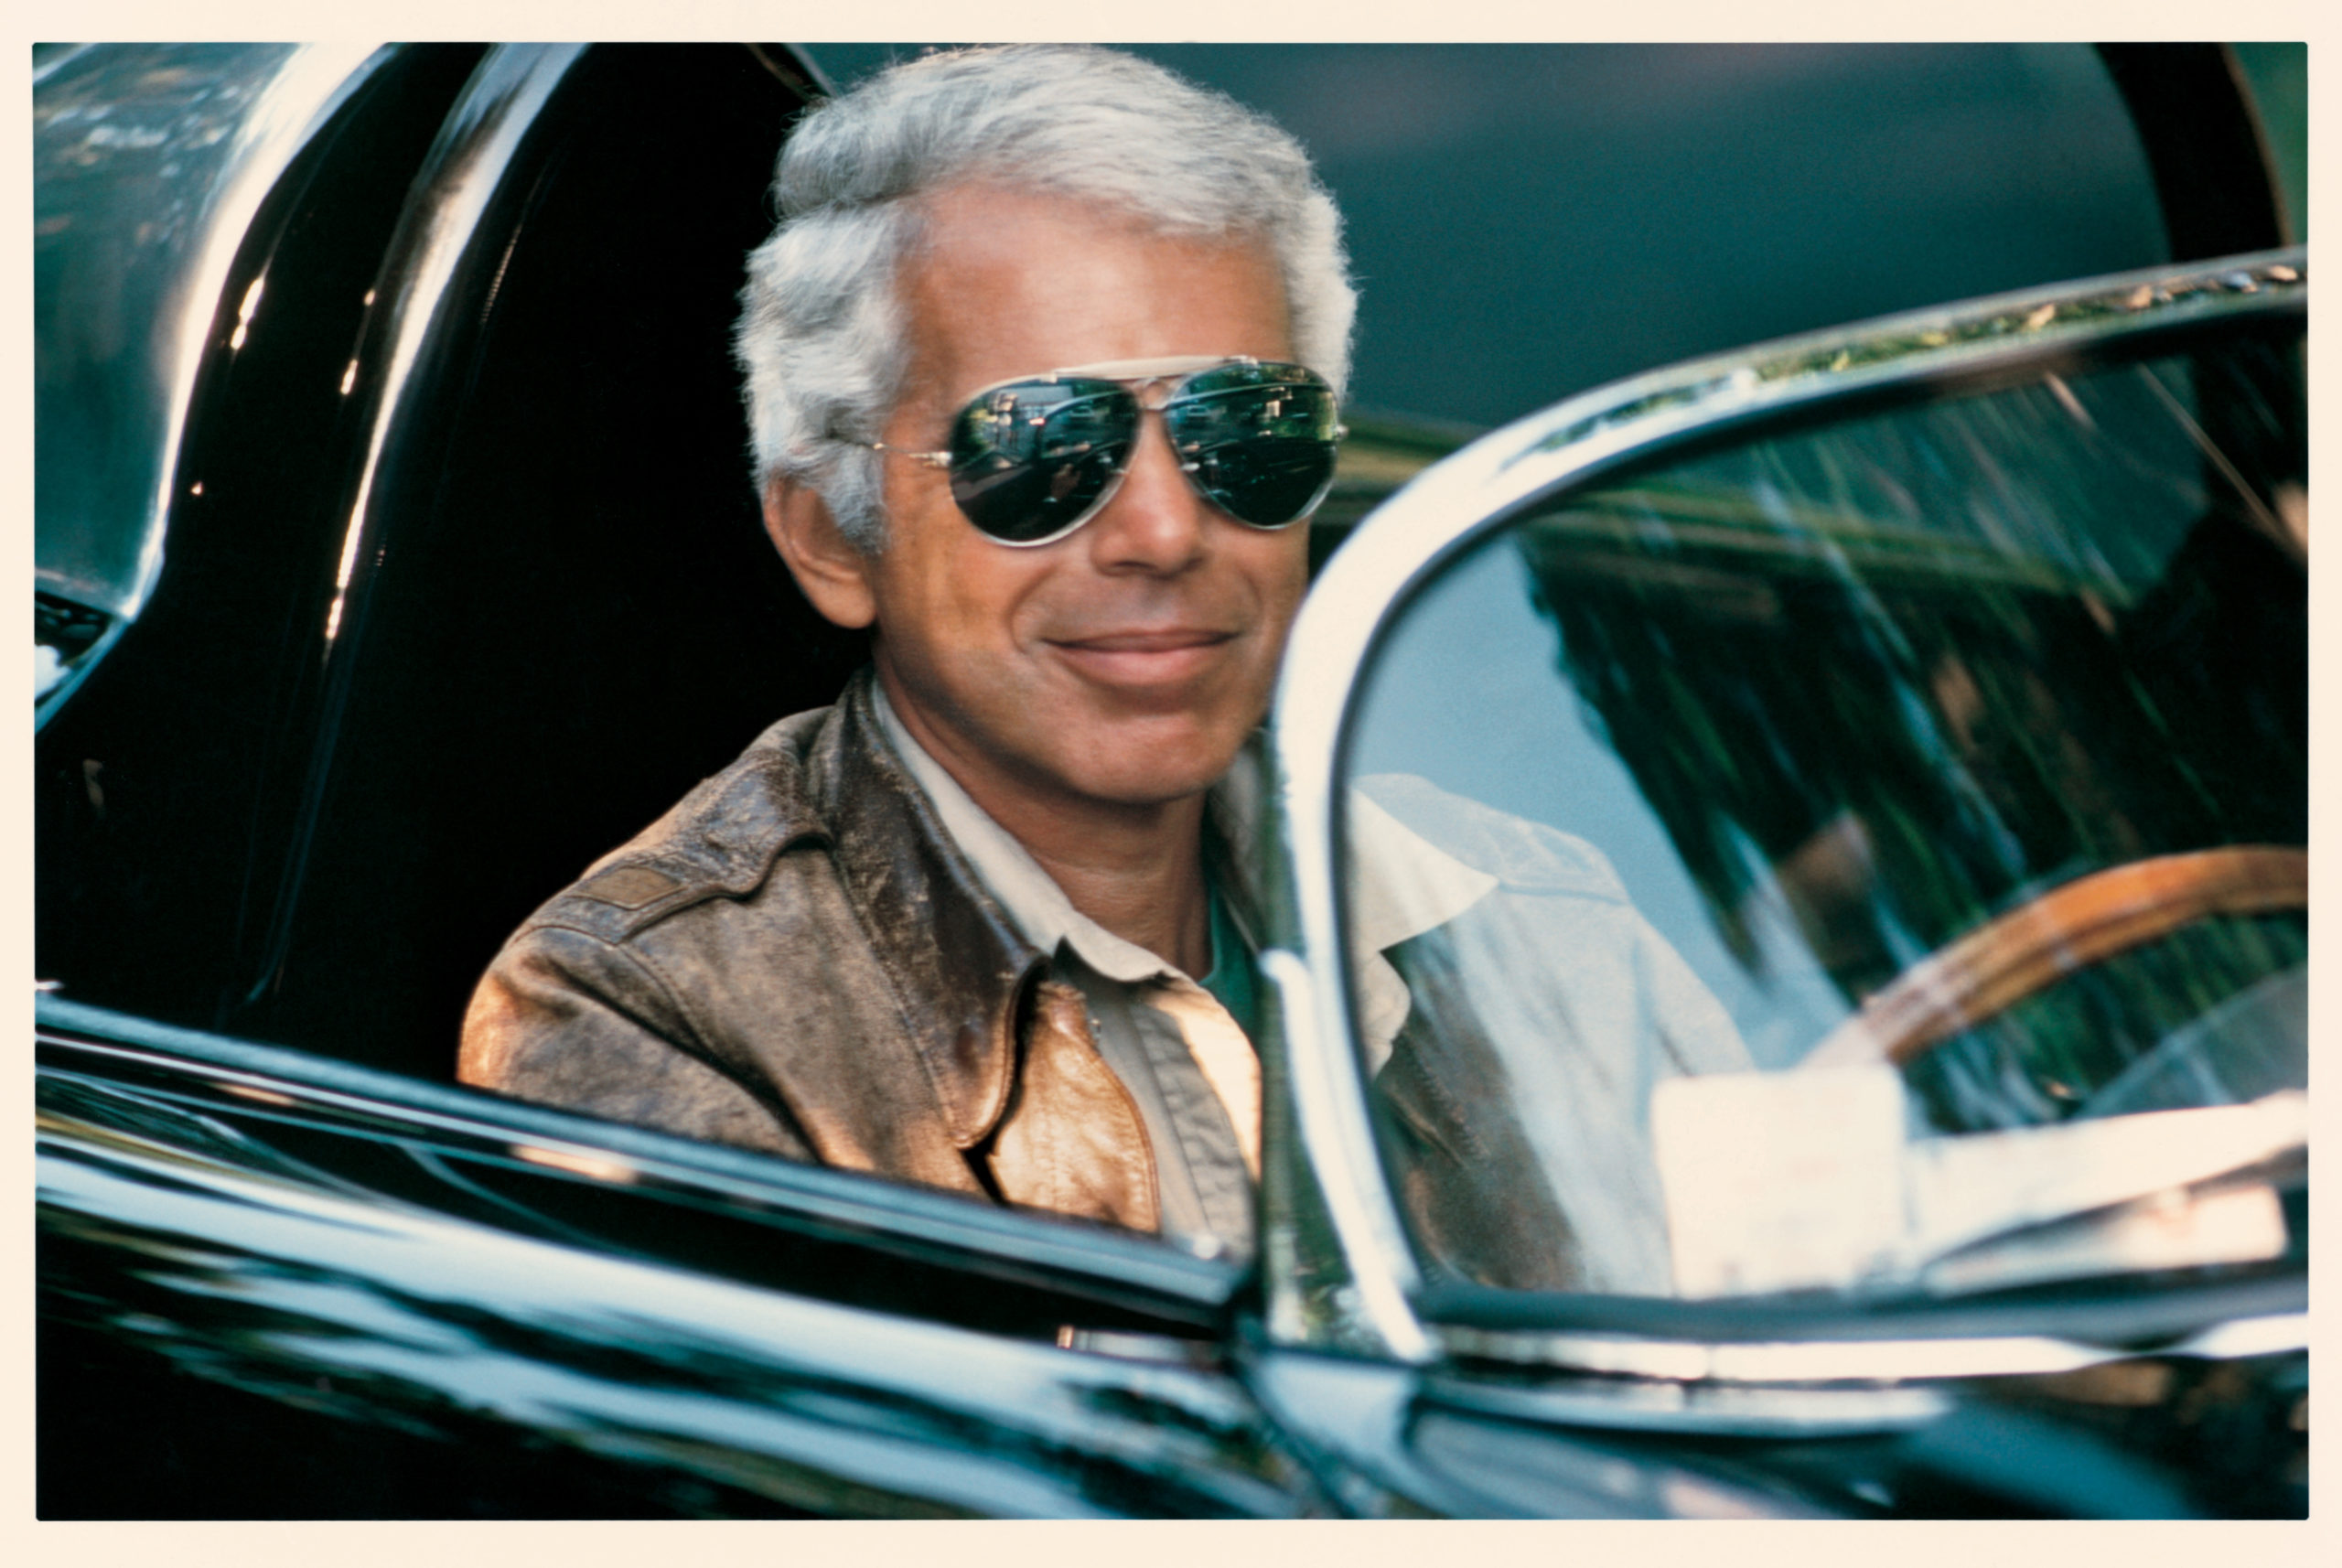 Ralph Lauren (50s) in his car.